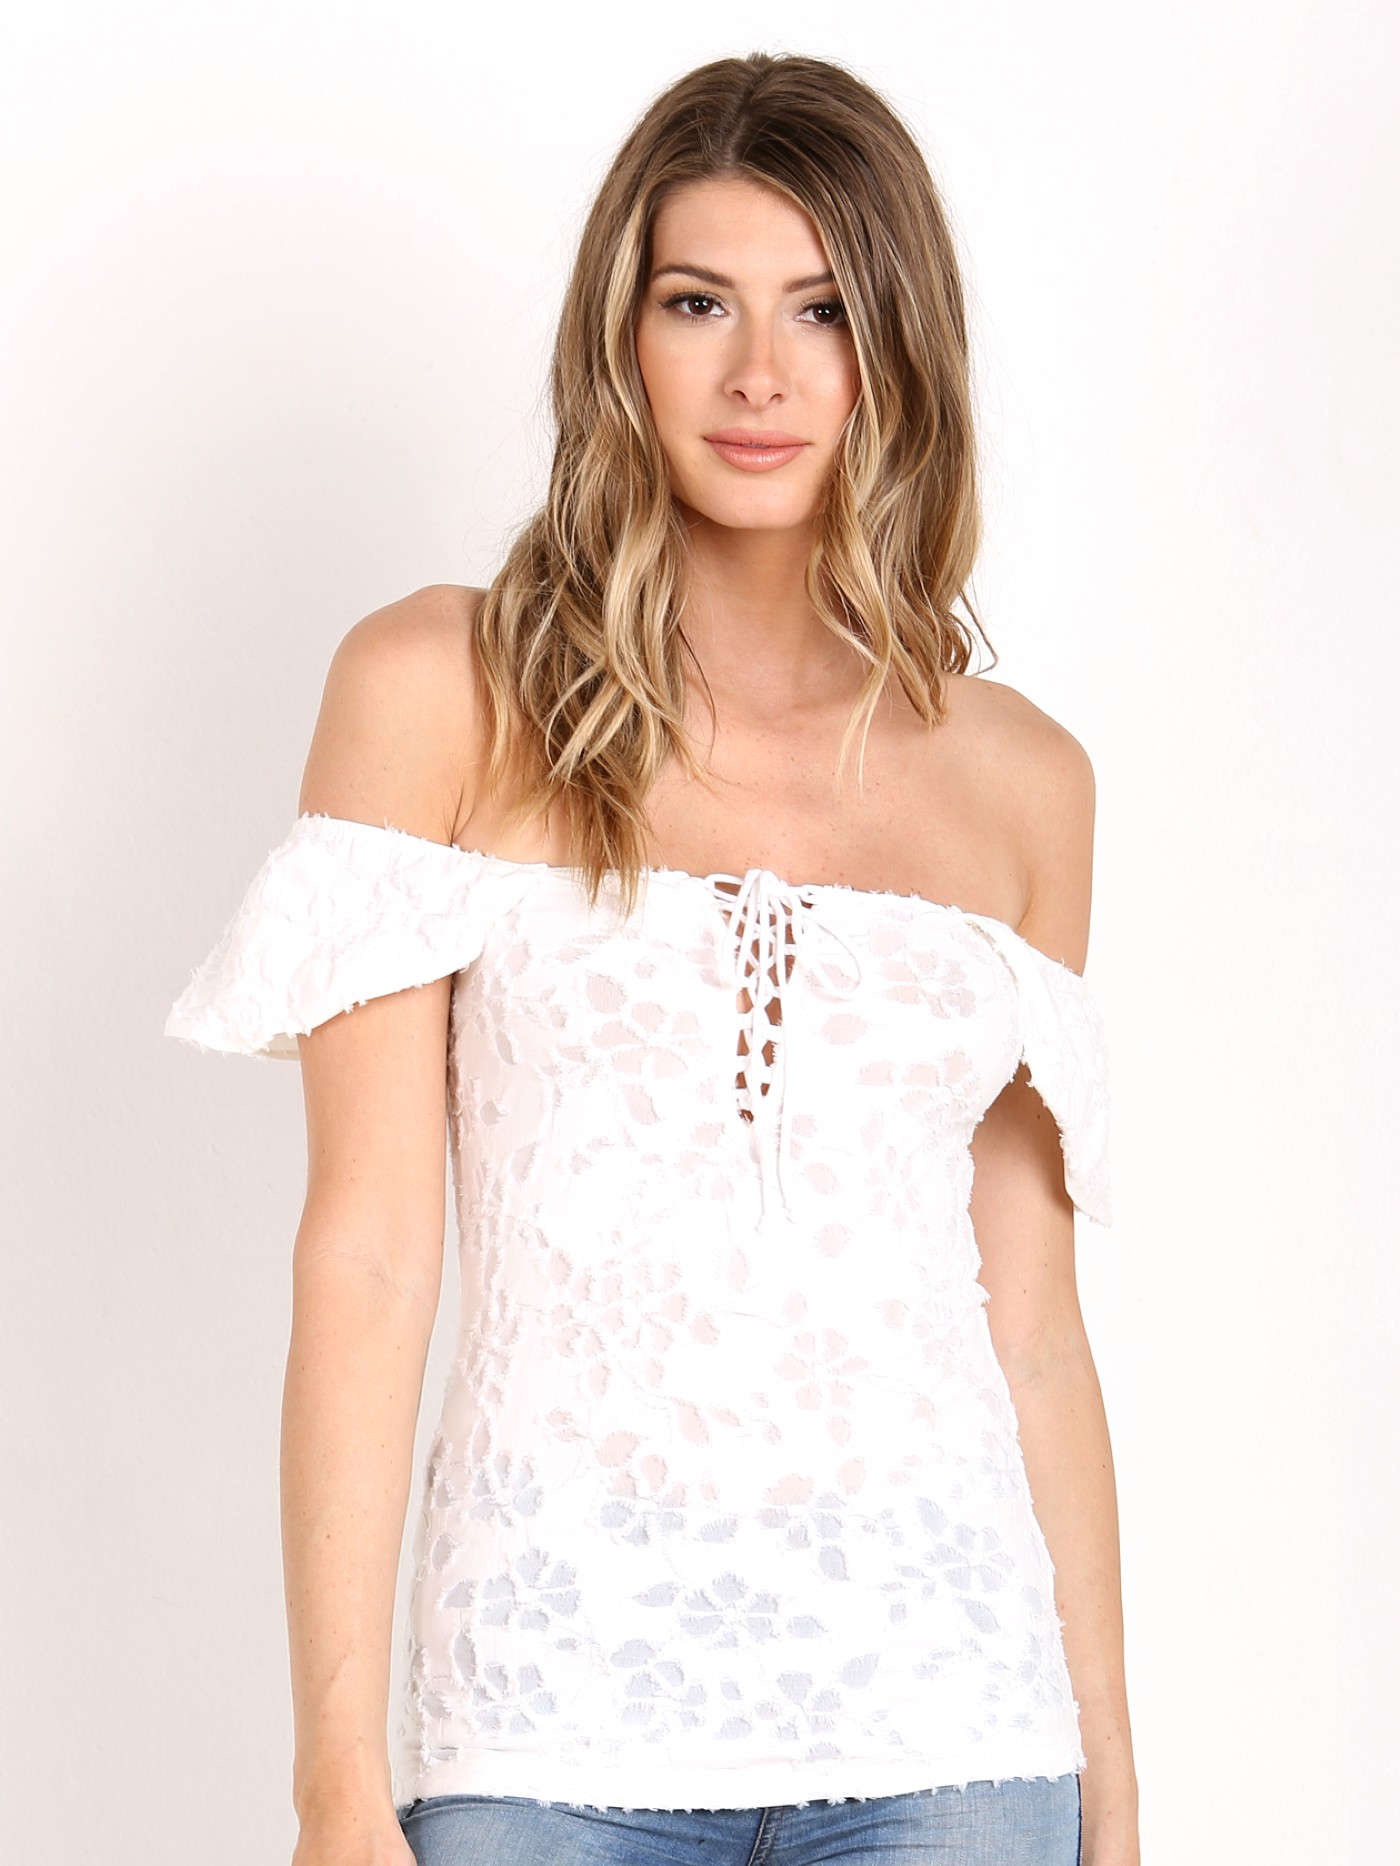 77f2c9197e6f8 Free People Popsicle Off the Shoulder Top Ivory OB496121 - Free Shipping at  Largo Drive